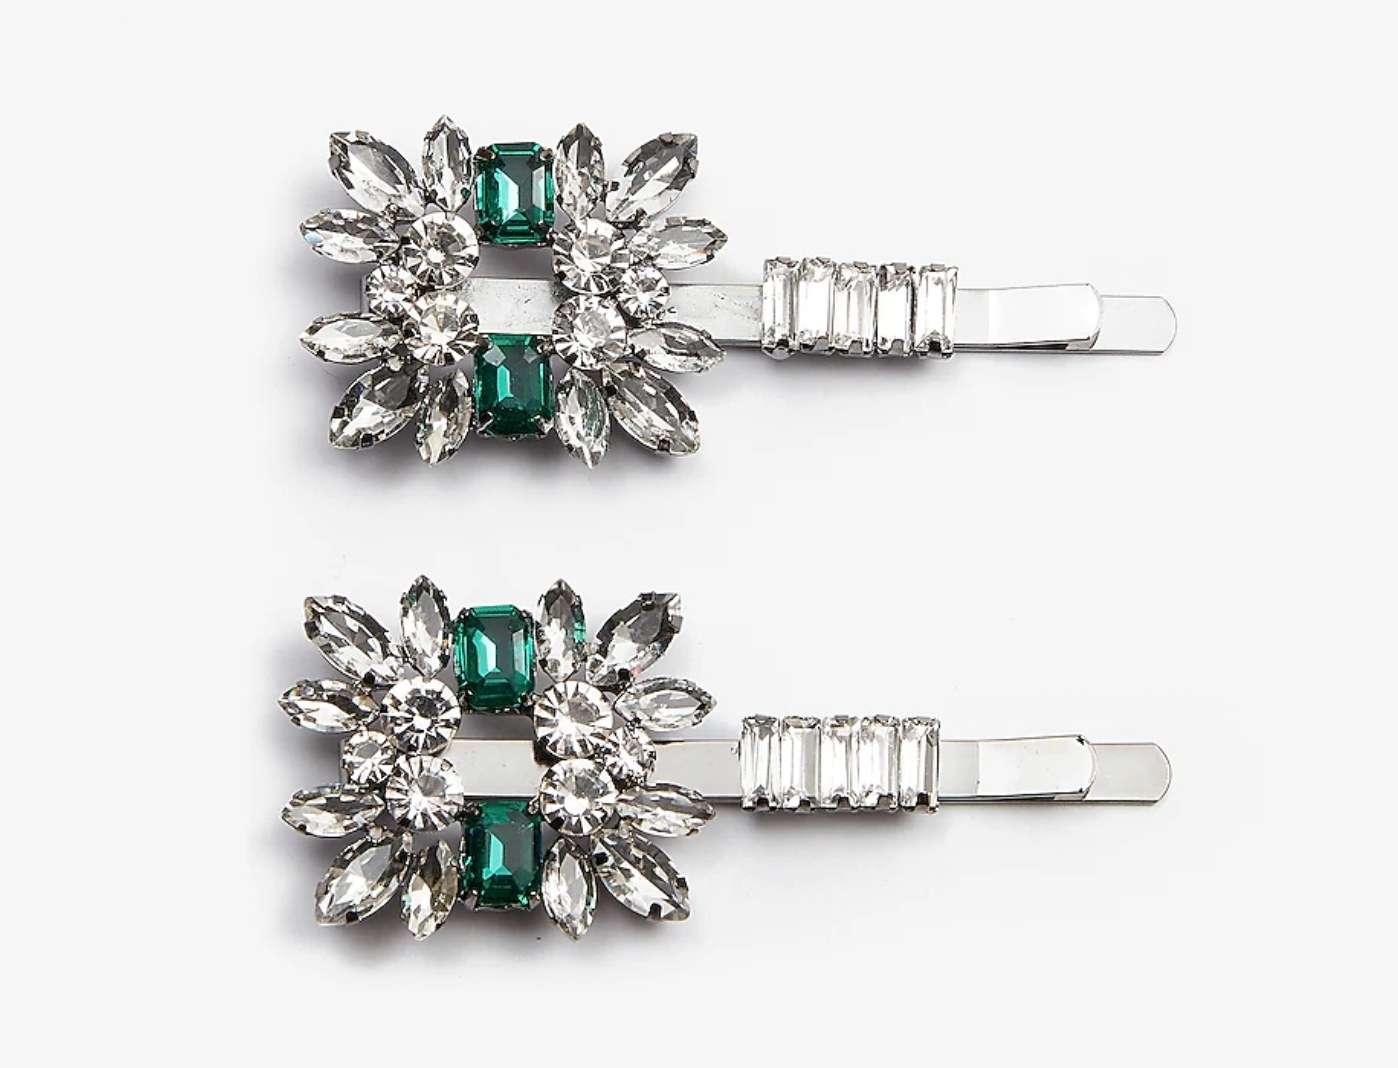 A pair of silver hair clips with diamond-like an emerald-like gems on it